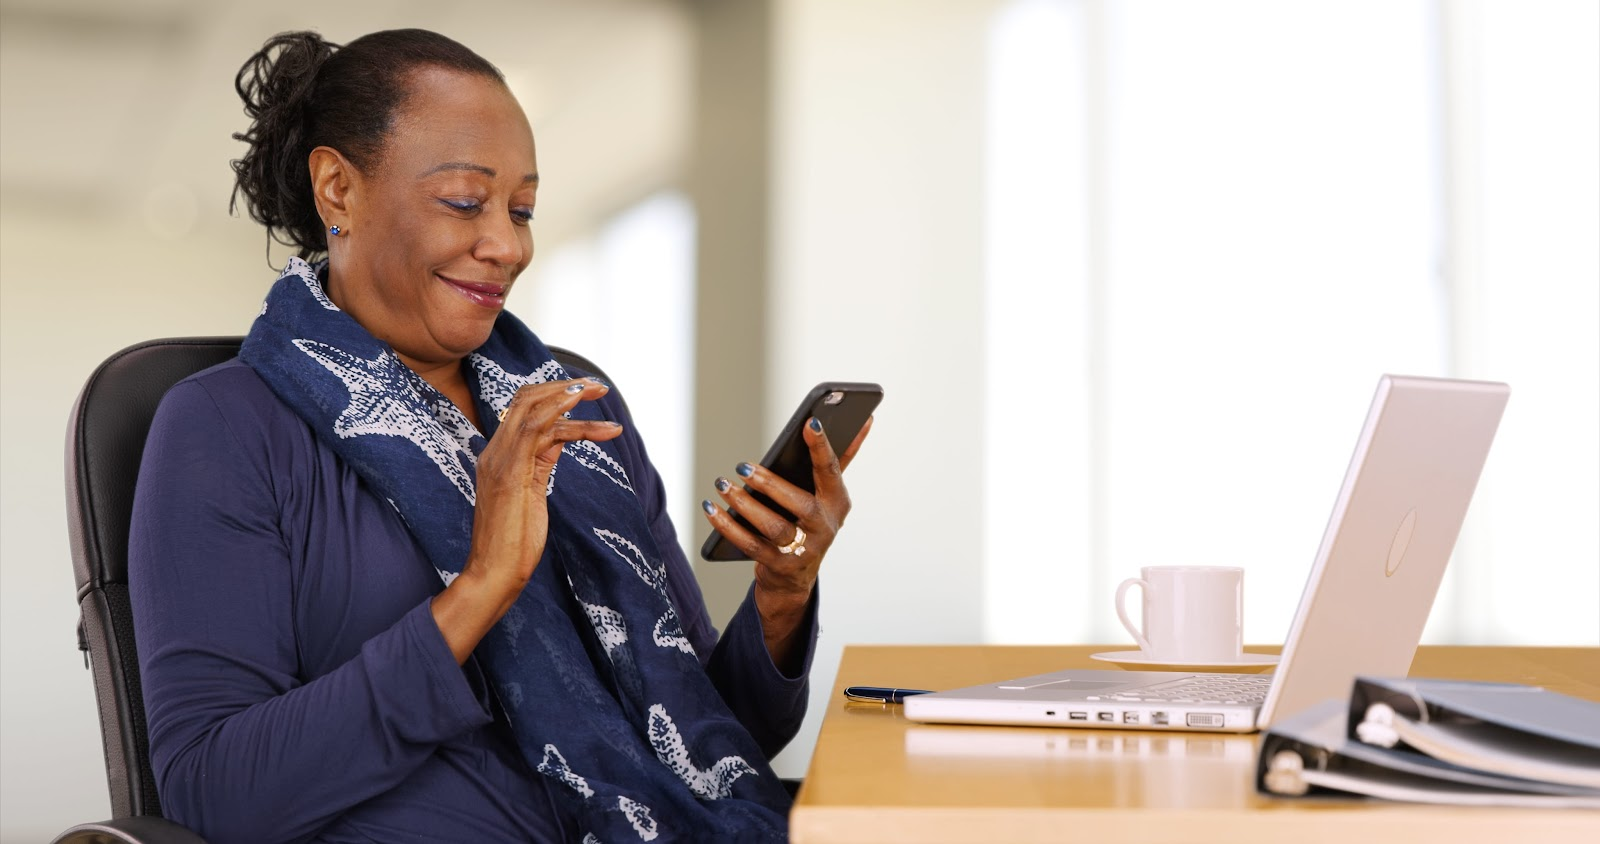 woman searching online on phone